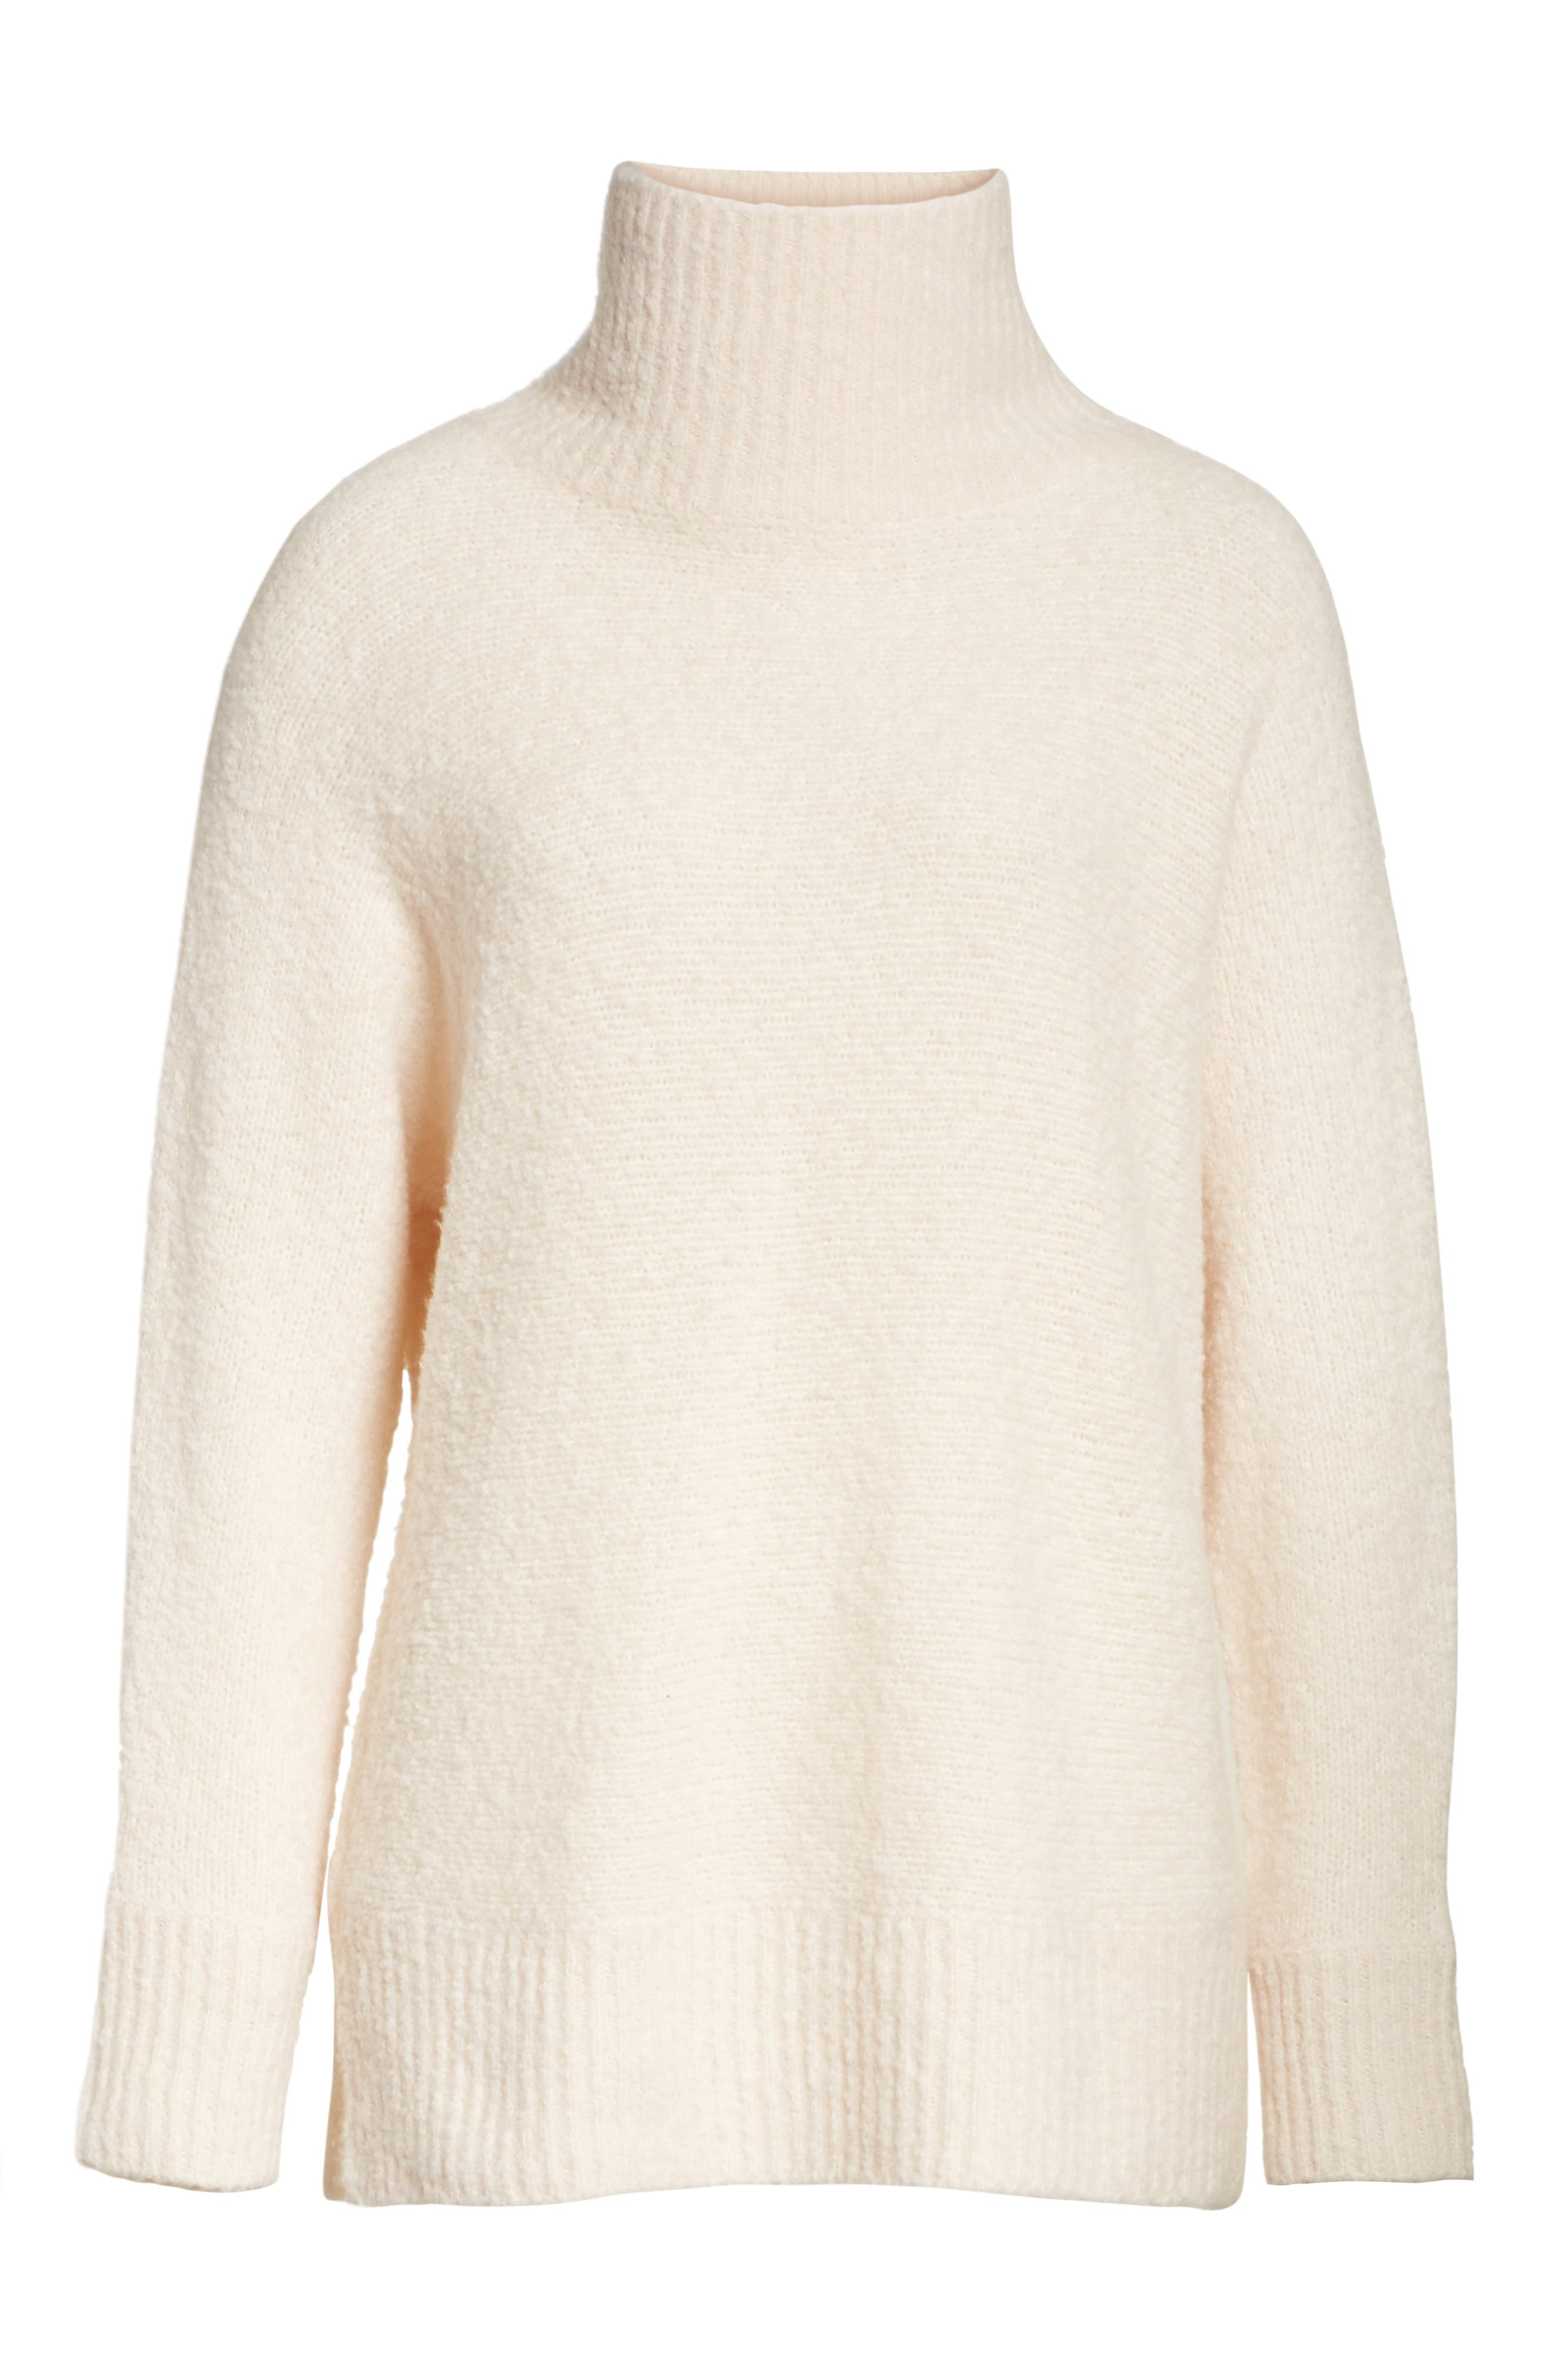 Lehi Wool & Cashmere Sweater,                             Alternate thumbnail 12, color,